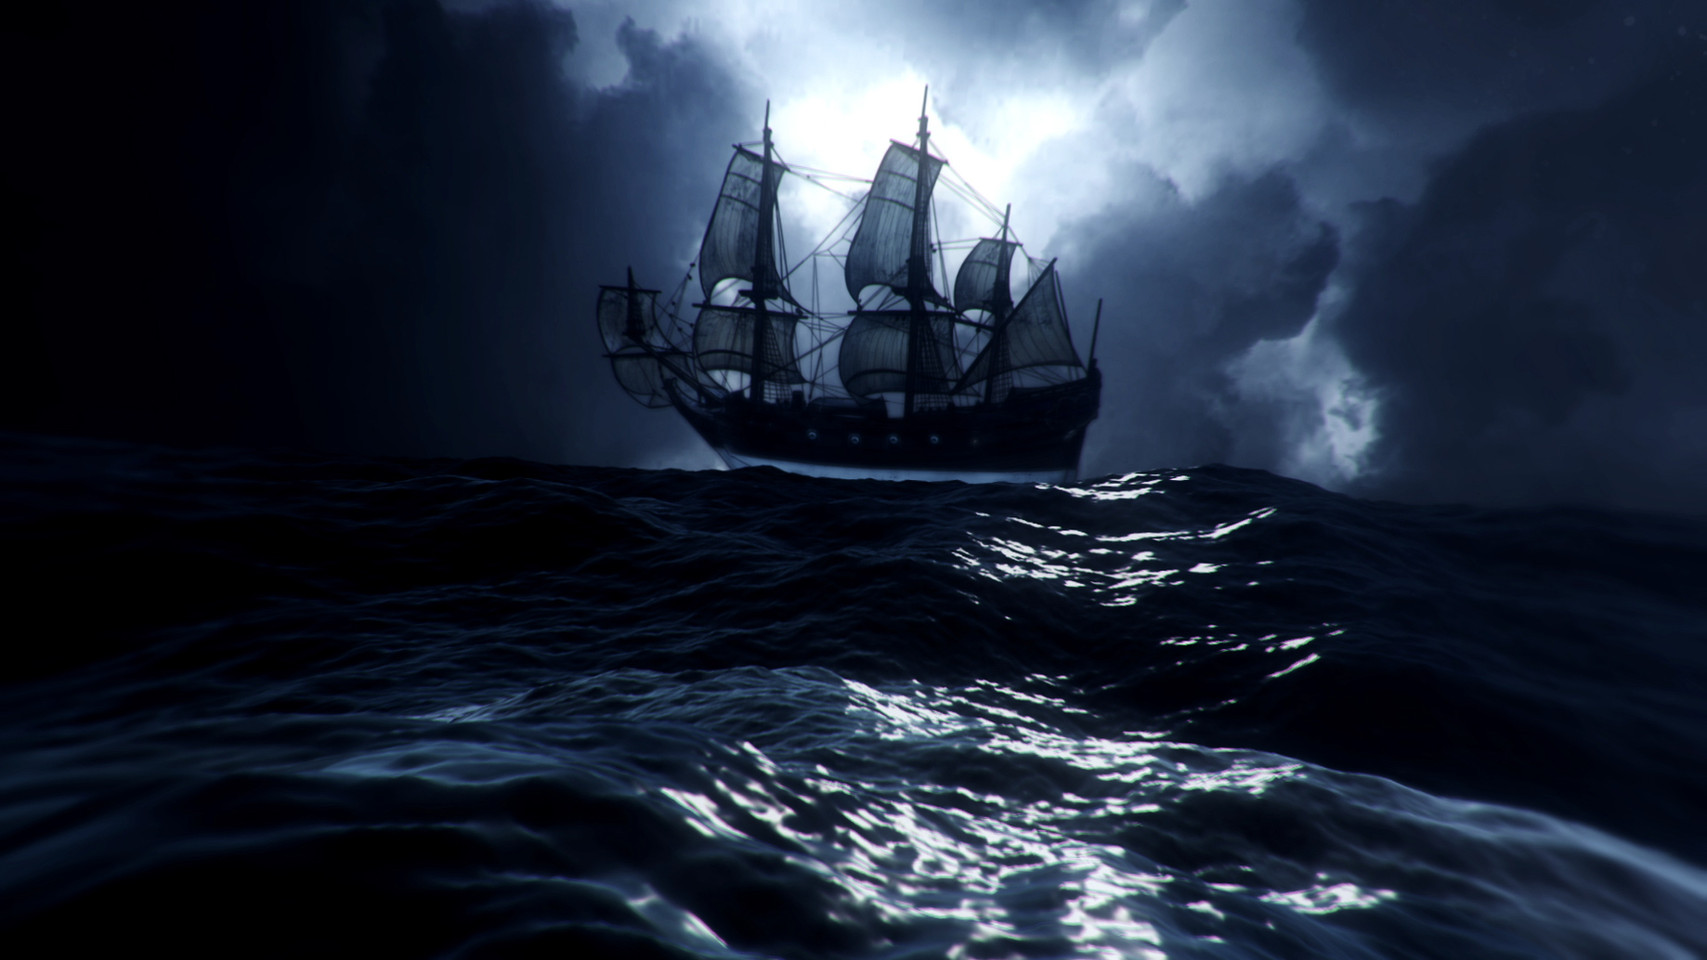 Pirate Ship In Storm.jpg